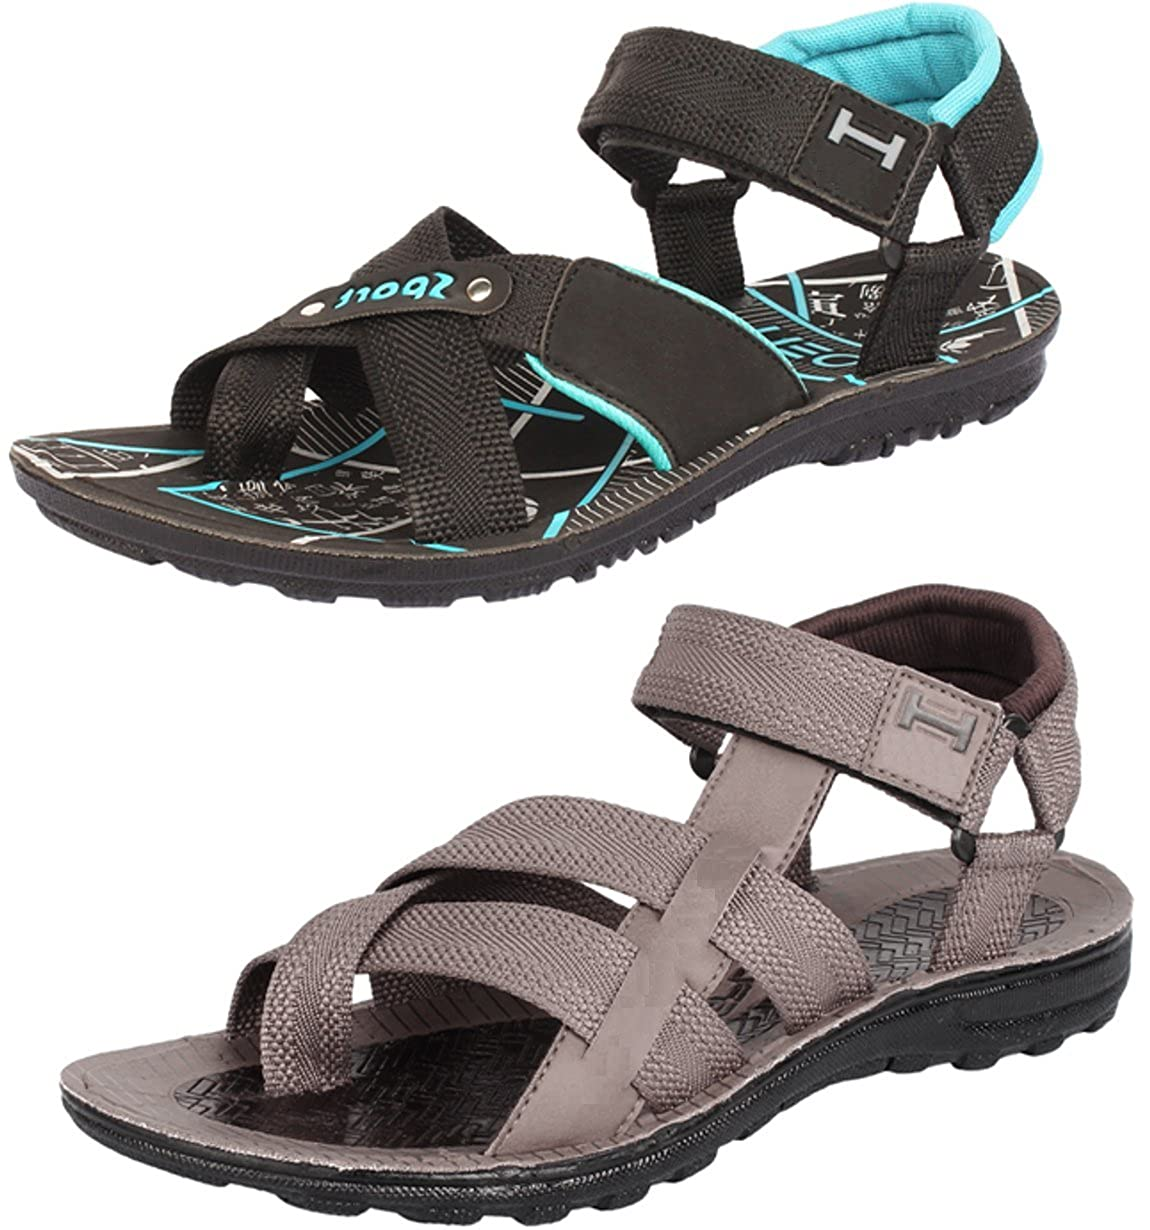 049eea74d3f5c Maddy Men's Perfect Stylish 2 Brown & Sea Green Casual Sports Sandals (10):  Buy Online at Low Prices in India - Amazon.in